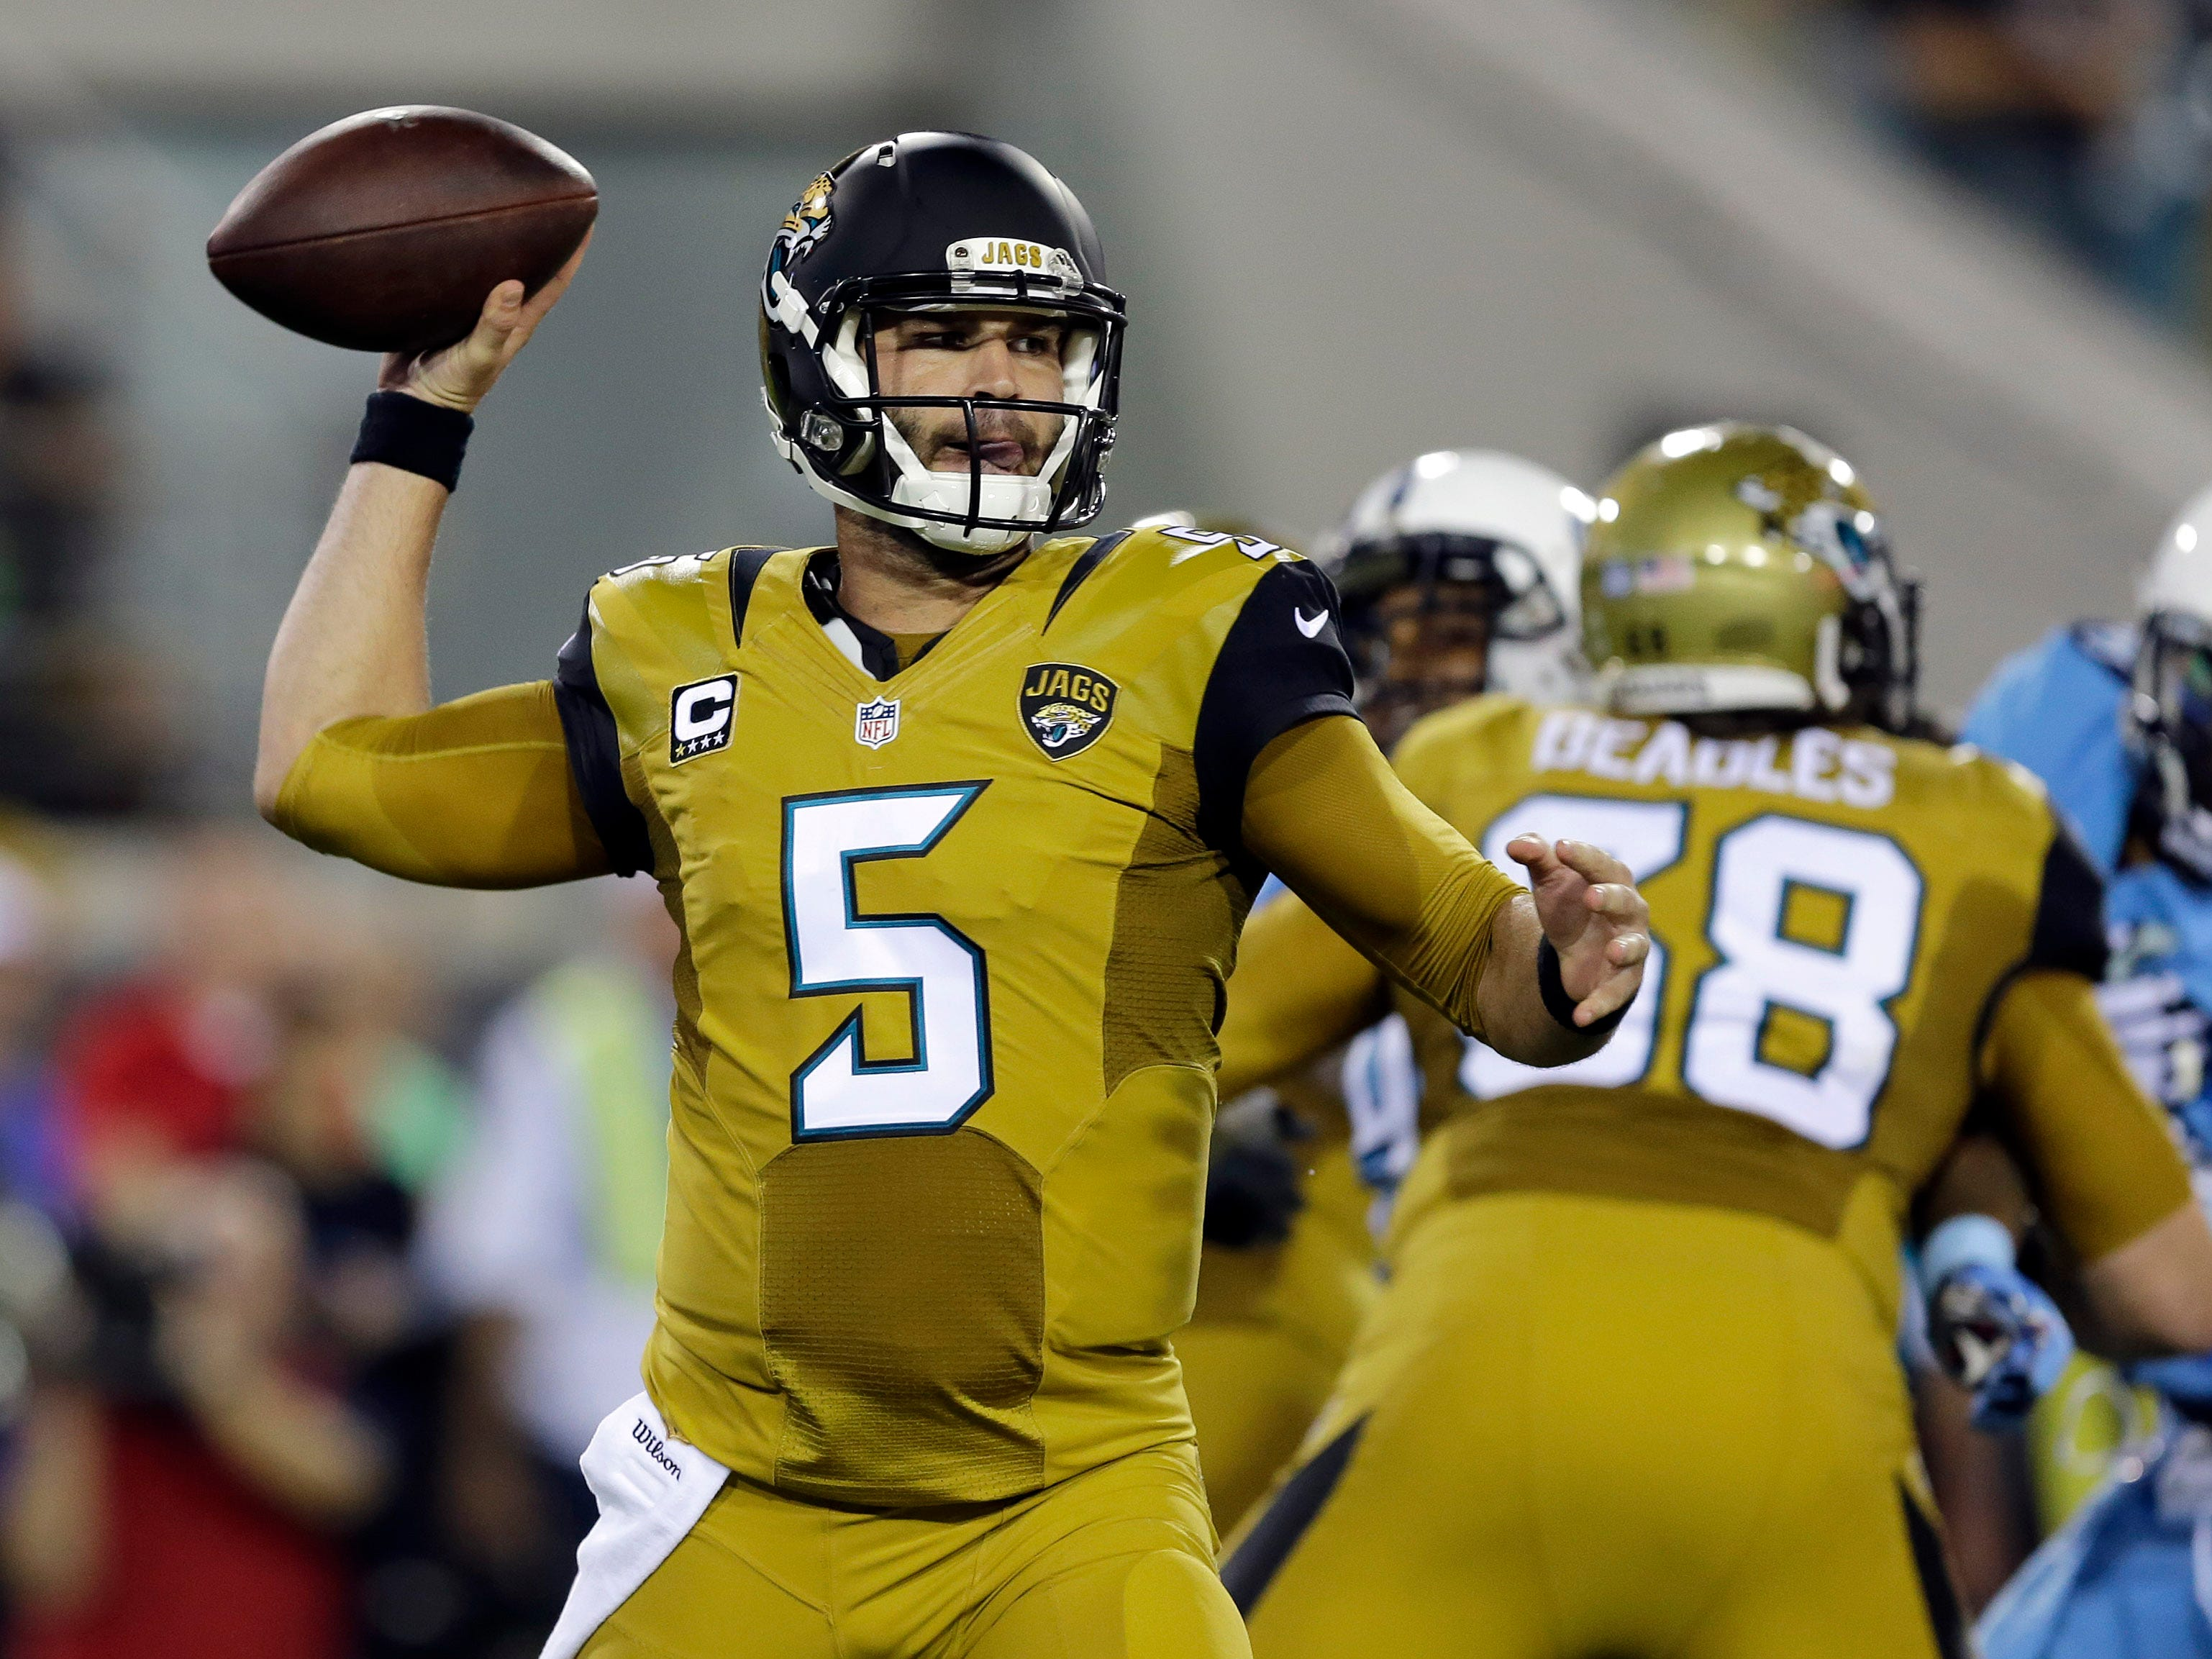 Quarterback Blake Bortles wearing the Jaguars' spicy mustard uniforms in 2015.